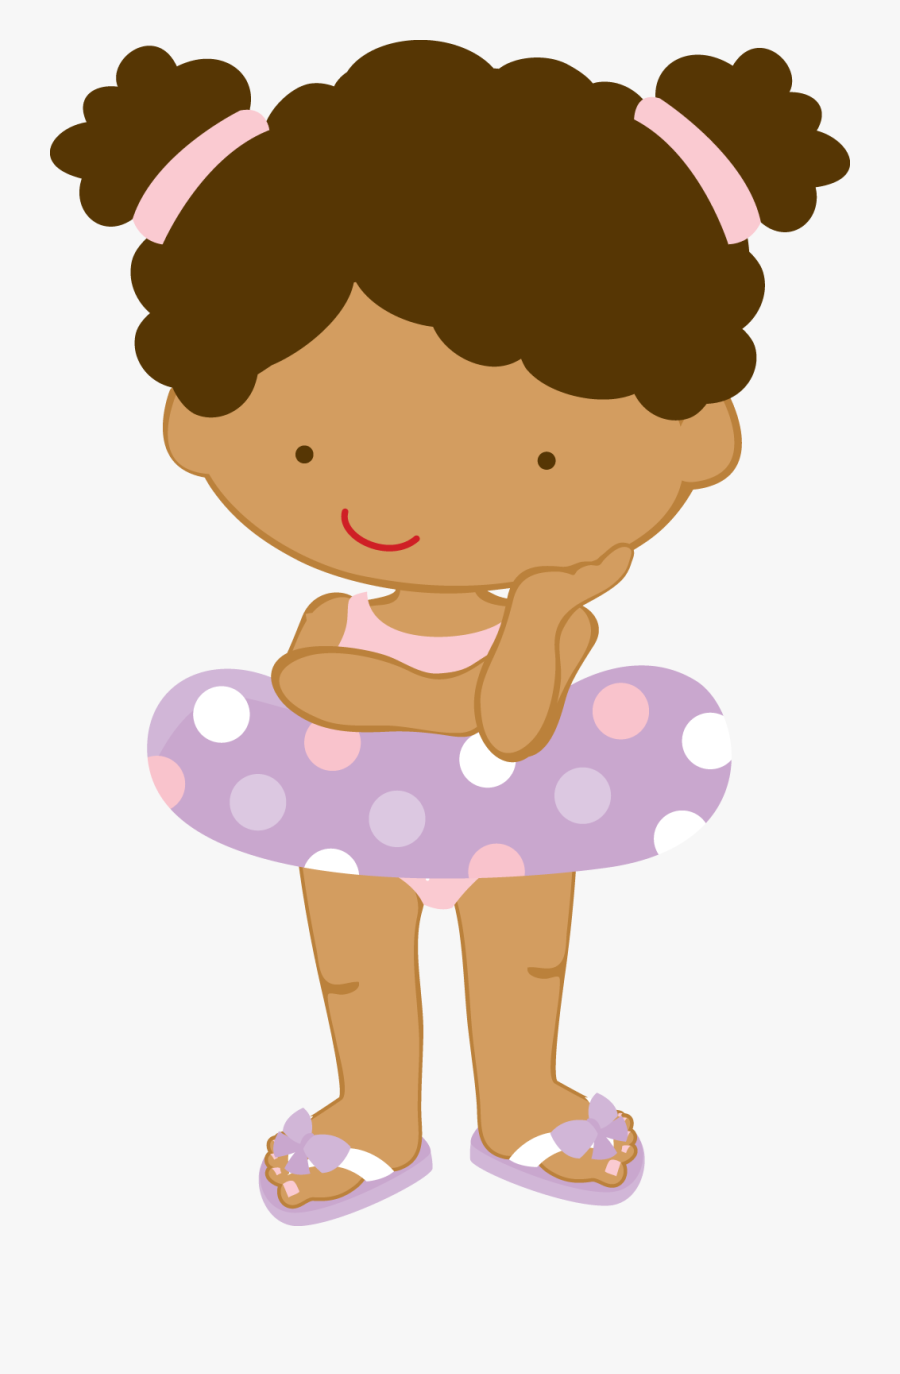 Photo Shared On Meowchat Pool Parties, Cute Clipart, - Girls Pool Party Clipart, Transparent Clipart